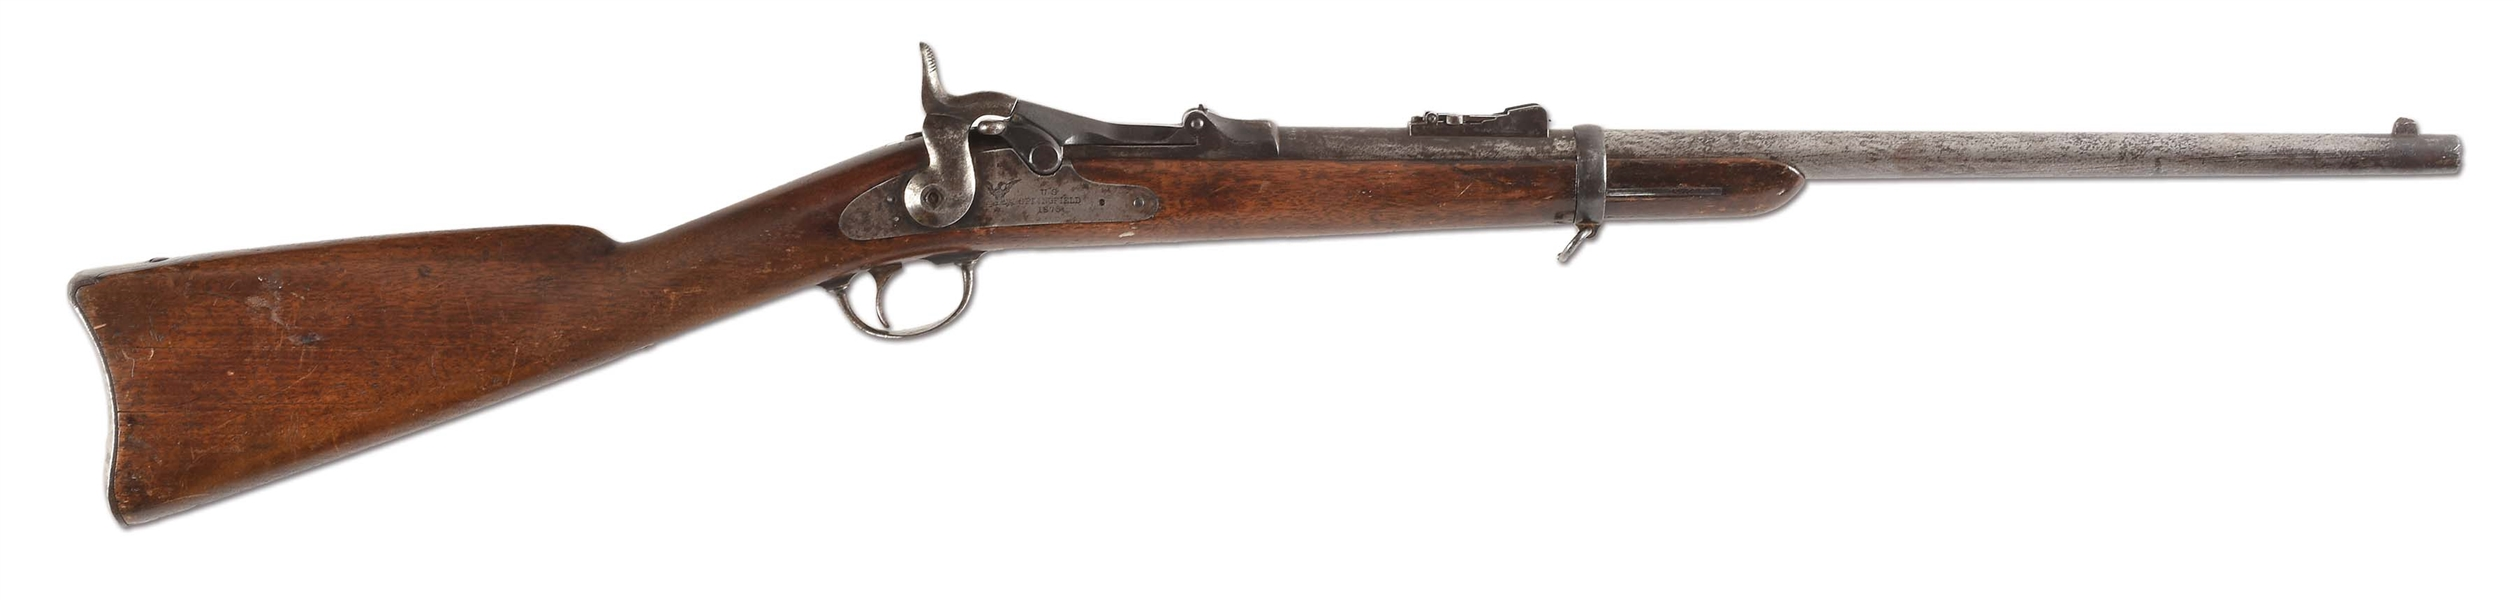 (A) THE TRUMPETEER CARBINE, FORENSICALLY CONFIRMED & SOLDIER IDENTIFIED TO THE LAST WHITE MAN TO SEE CUSTER ALIVE, CUSTER BATTLEFIELD US MODEL 1873 SPRINGFIELD TRAPDOOR CARBINE.